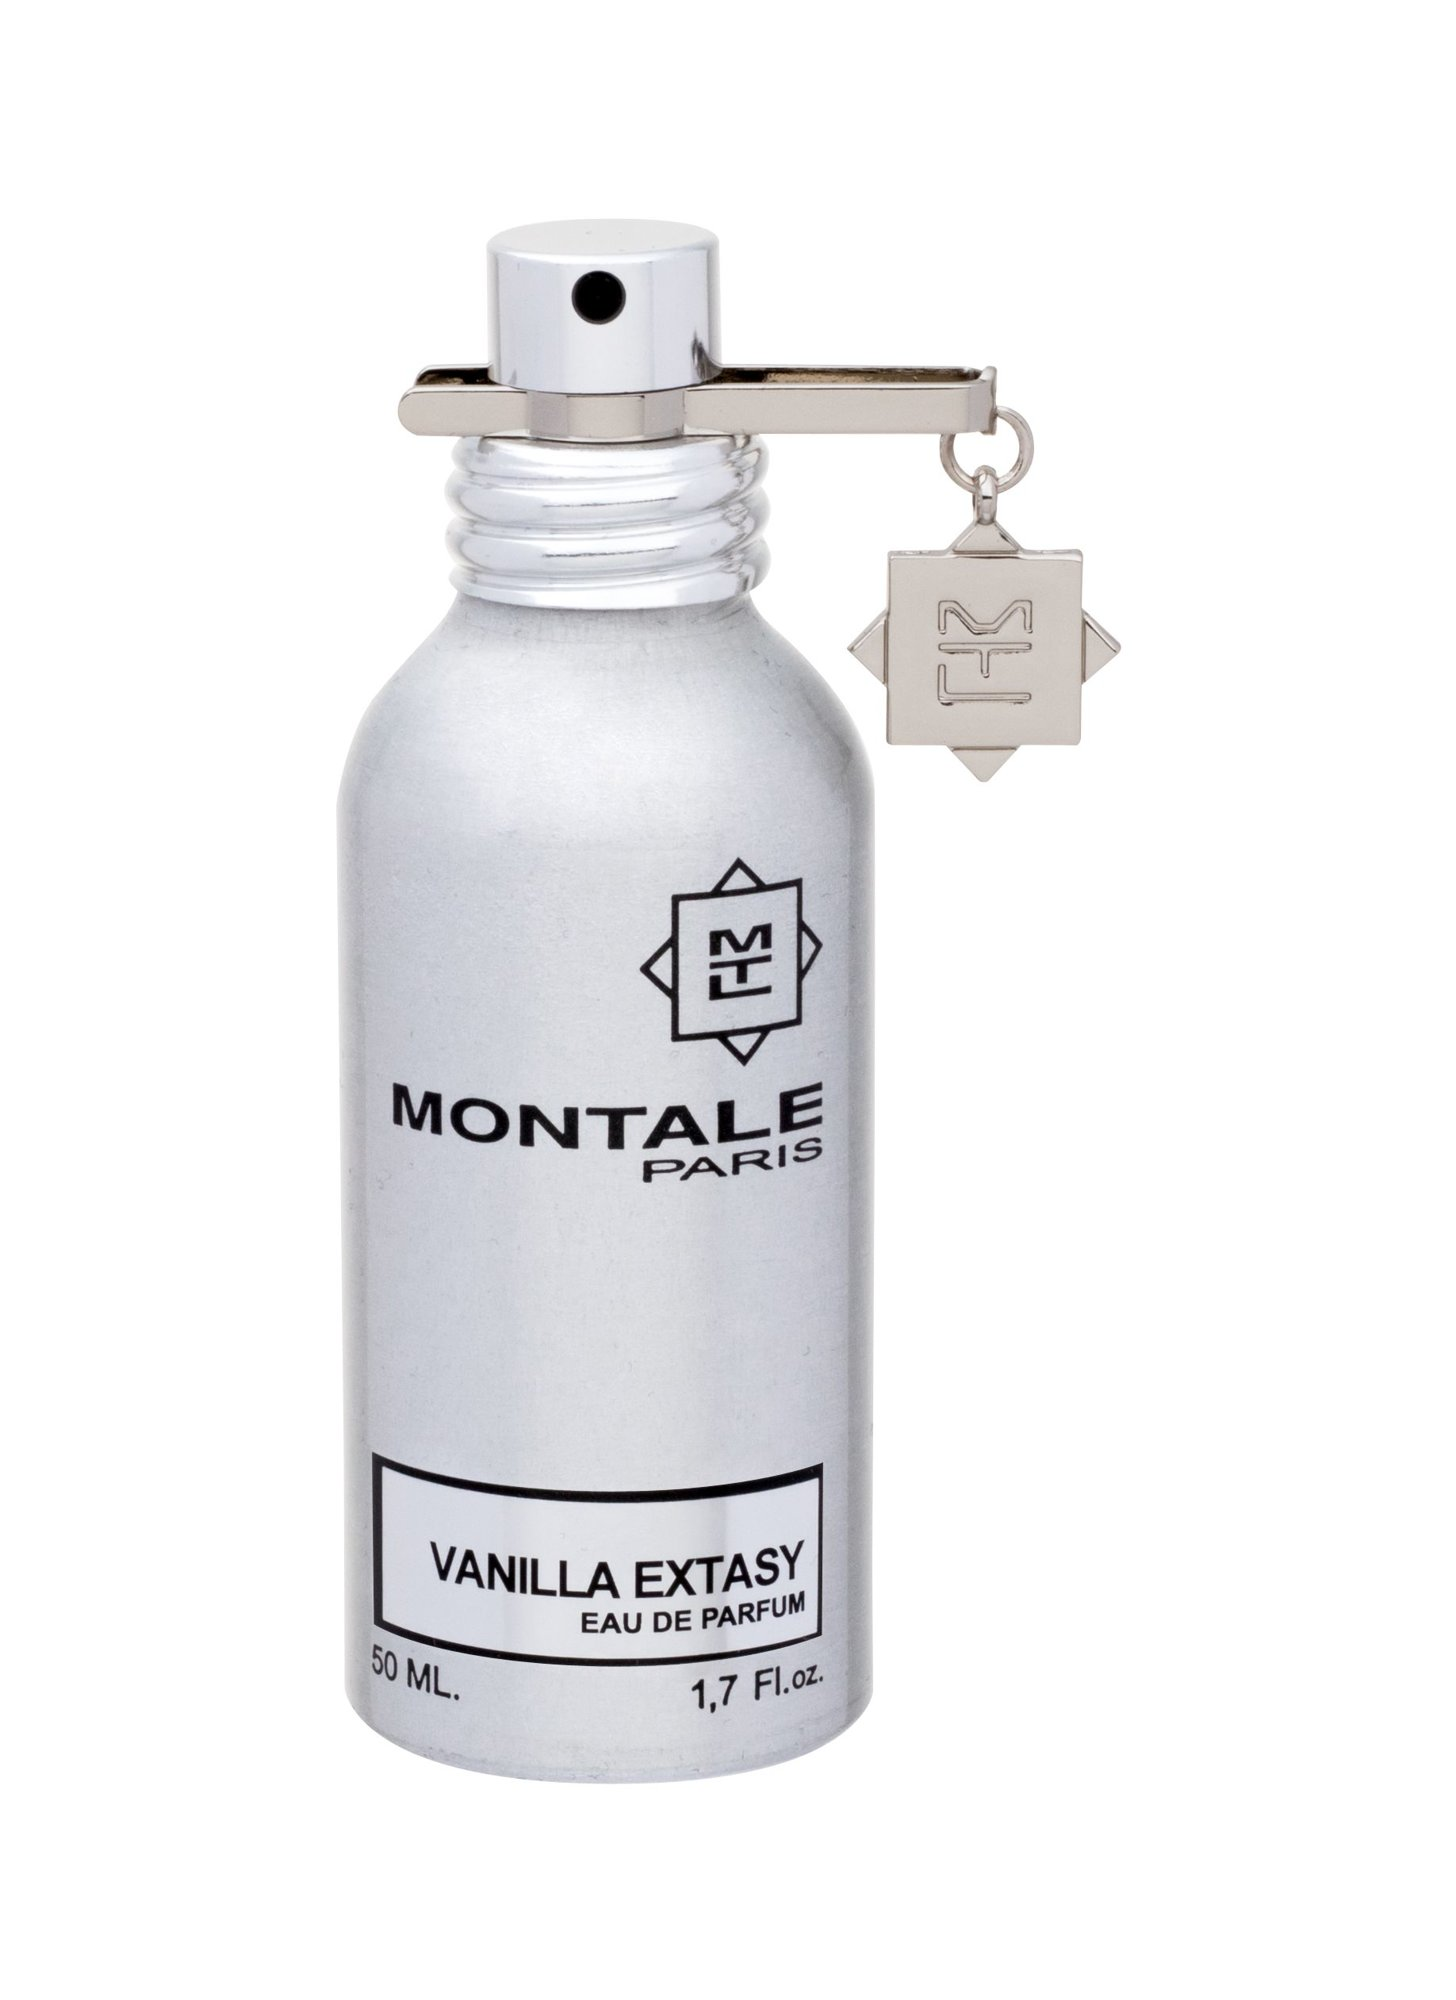 Montale Paris Vanilla Extasy EDP 50ml